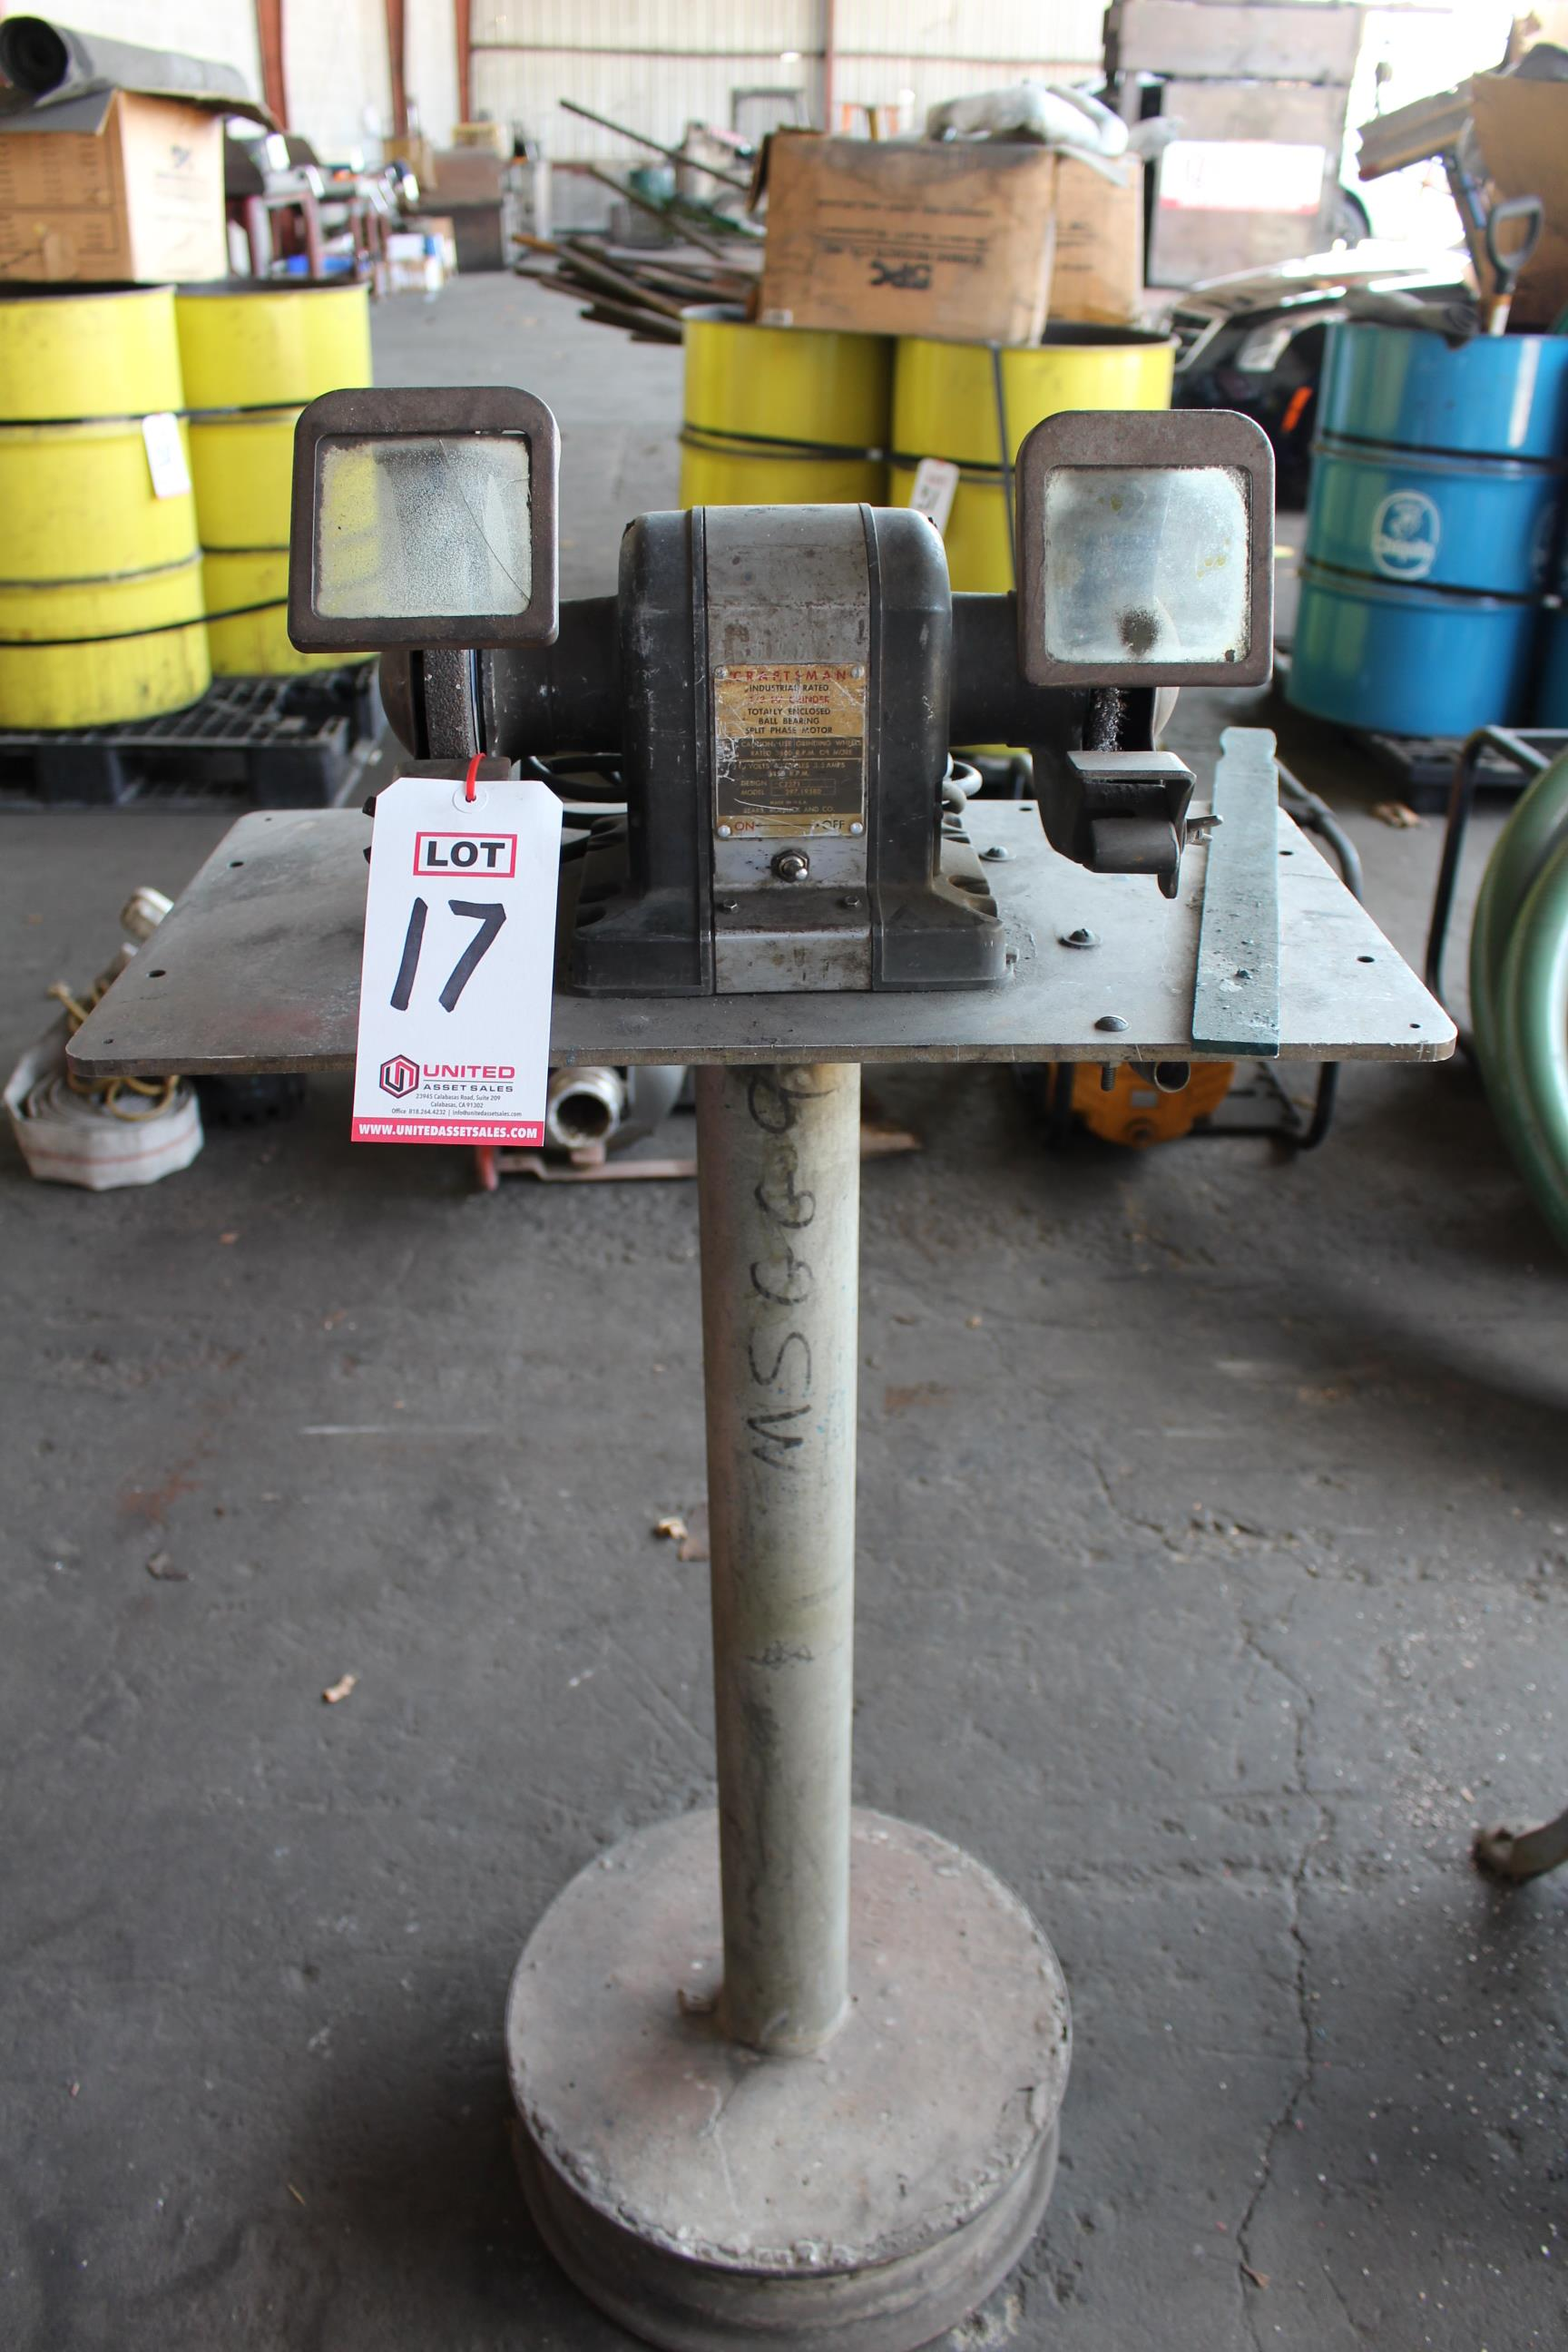 Lot 17 - CRAFTSMAN 1/2 HP GRINDER